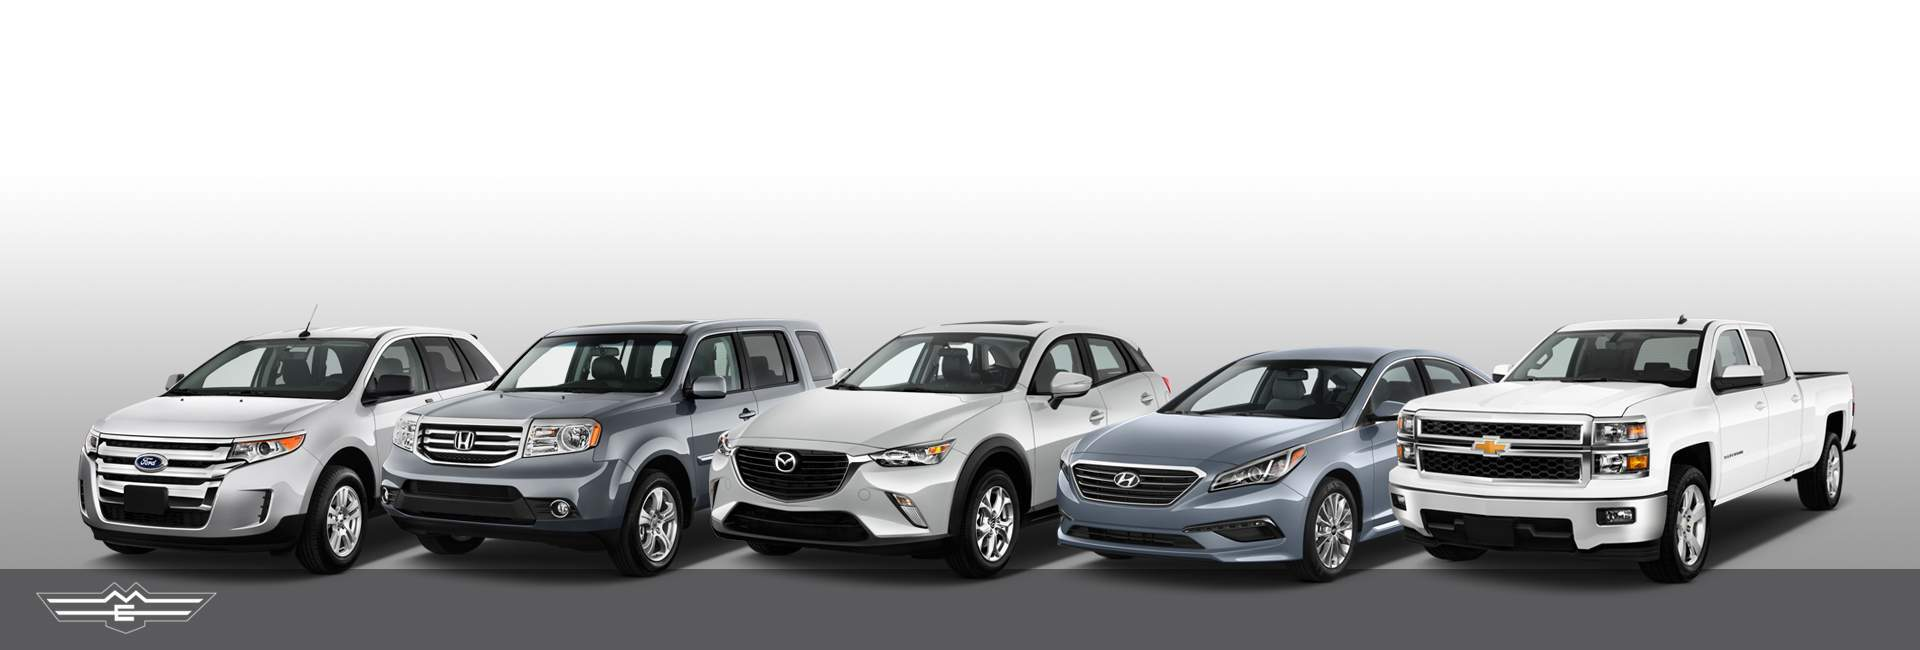 2017 Mazda Pre-Owned in Erie